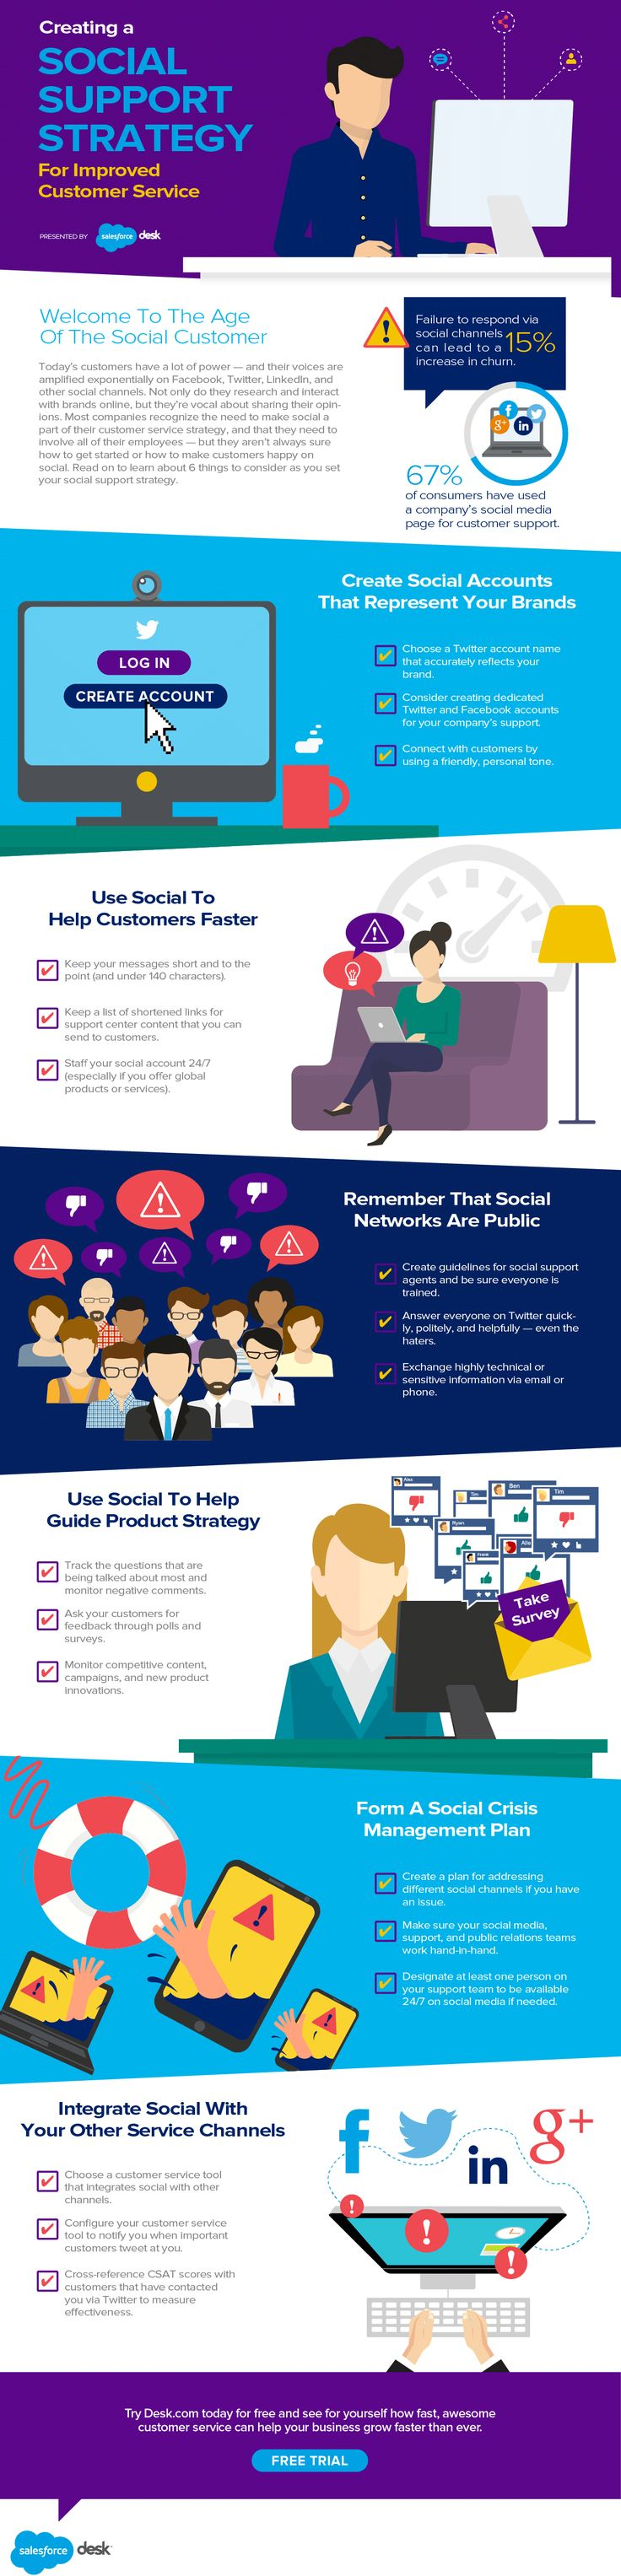 ideas about customer service strategy creating a social support strategy for improved customer service infographic customerservice socialmedia